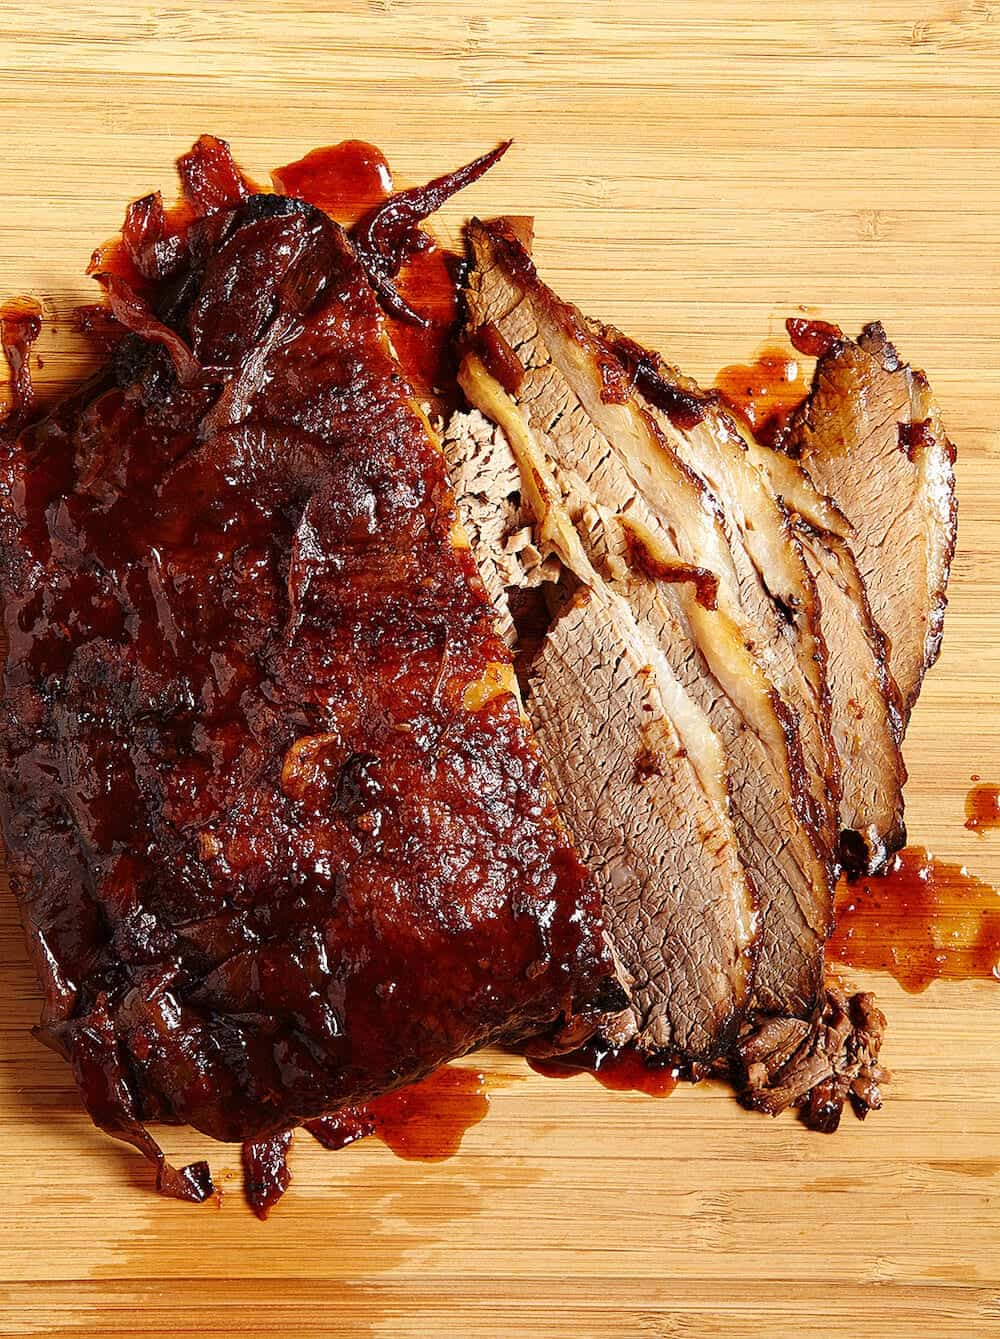 BBQ Brisket Sandwich Sliced - so delicious and easy!